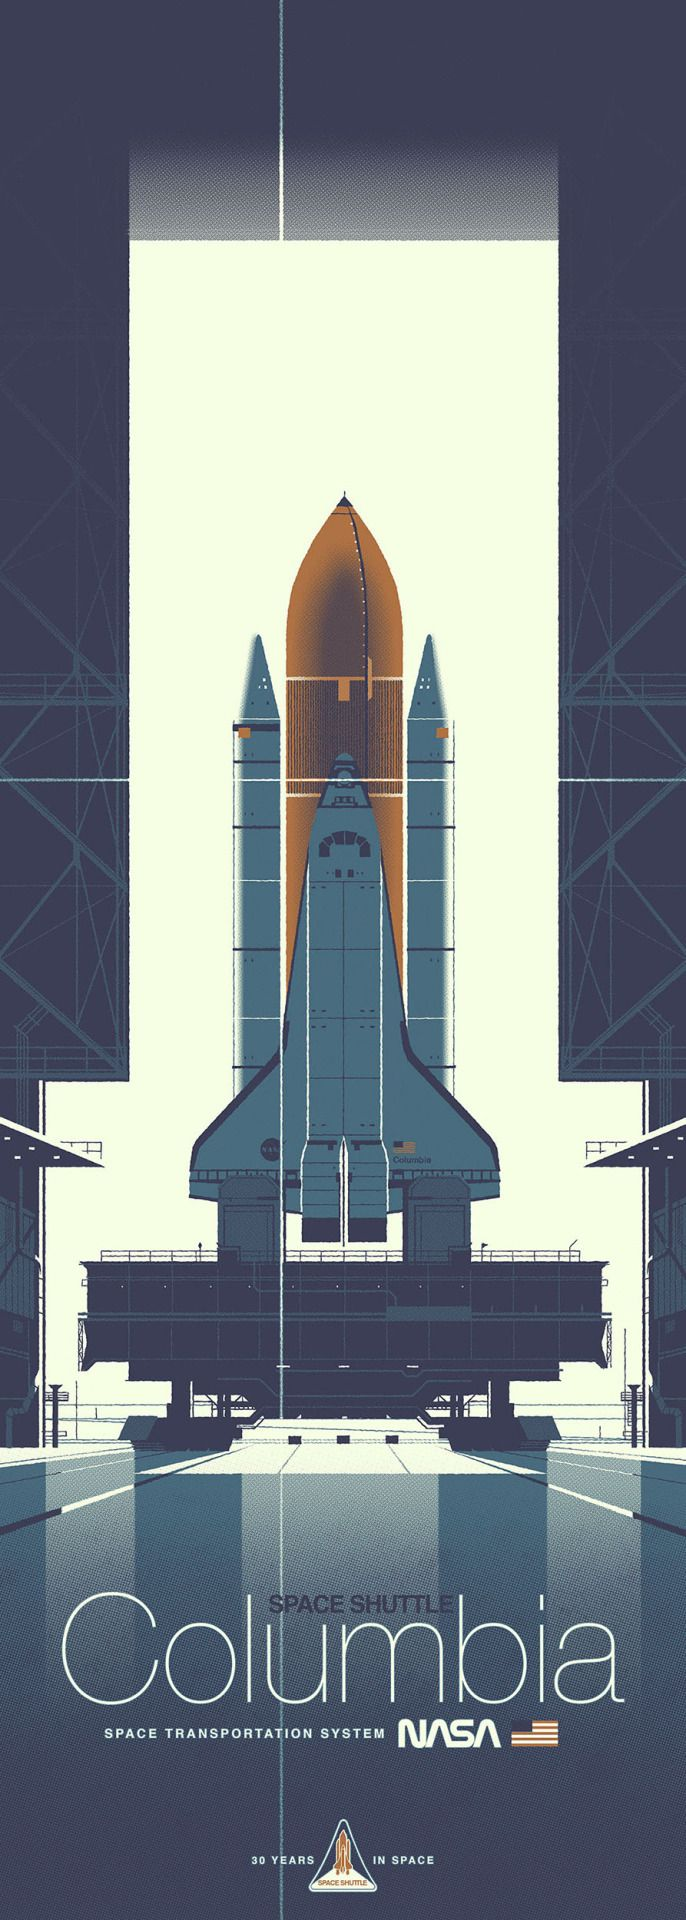 One of two prints from artist Kevin Dart's Space Shuttle series celebrating the Challenger and Columbia. These two incredible shuttles and their crews completed 36 successful missions and spent over 300 days in space. Some highlights of their missions included carrying the first woman to space (Challenger) and deploying the Chandra X-Ray Observatory (Columbia). #spaceship #spaceshuttle #columbia #illustration #prints #KevinDart